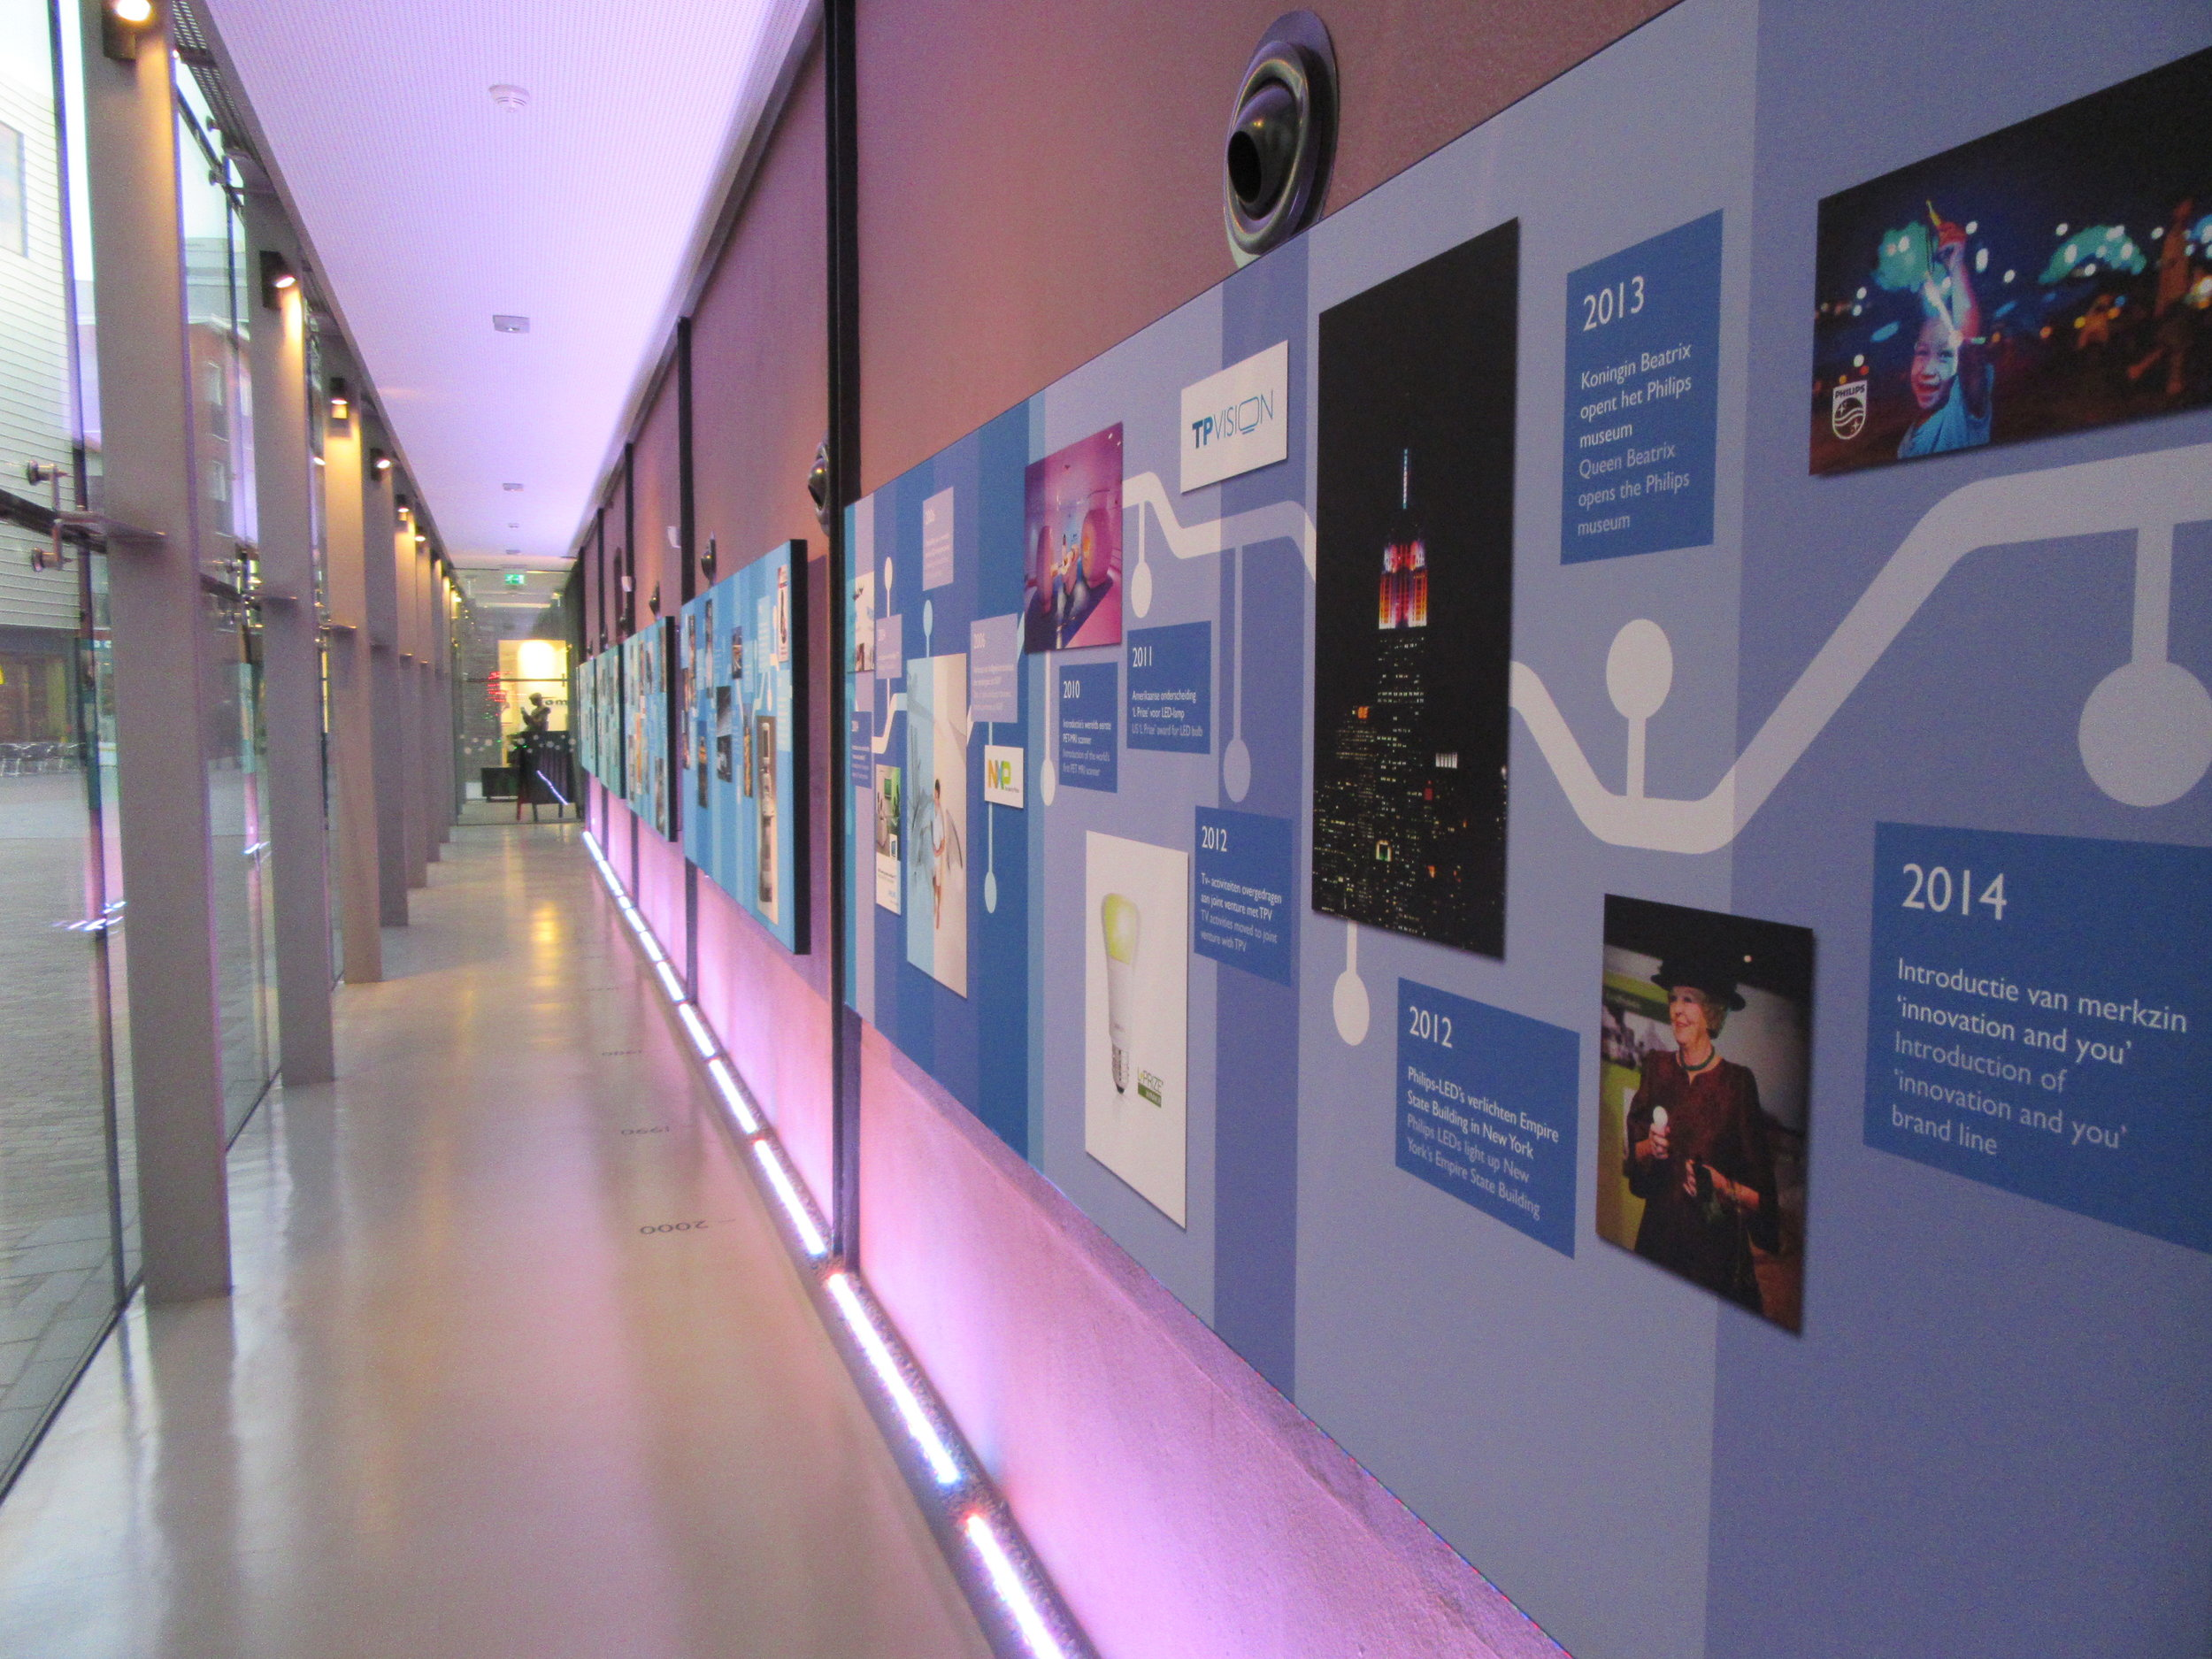 A timeline detailing the history of Philips brand at the Philips Museum located in the centre of Eindhoven.